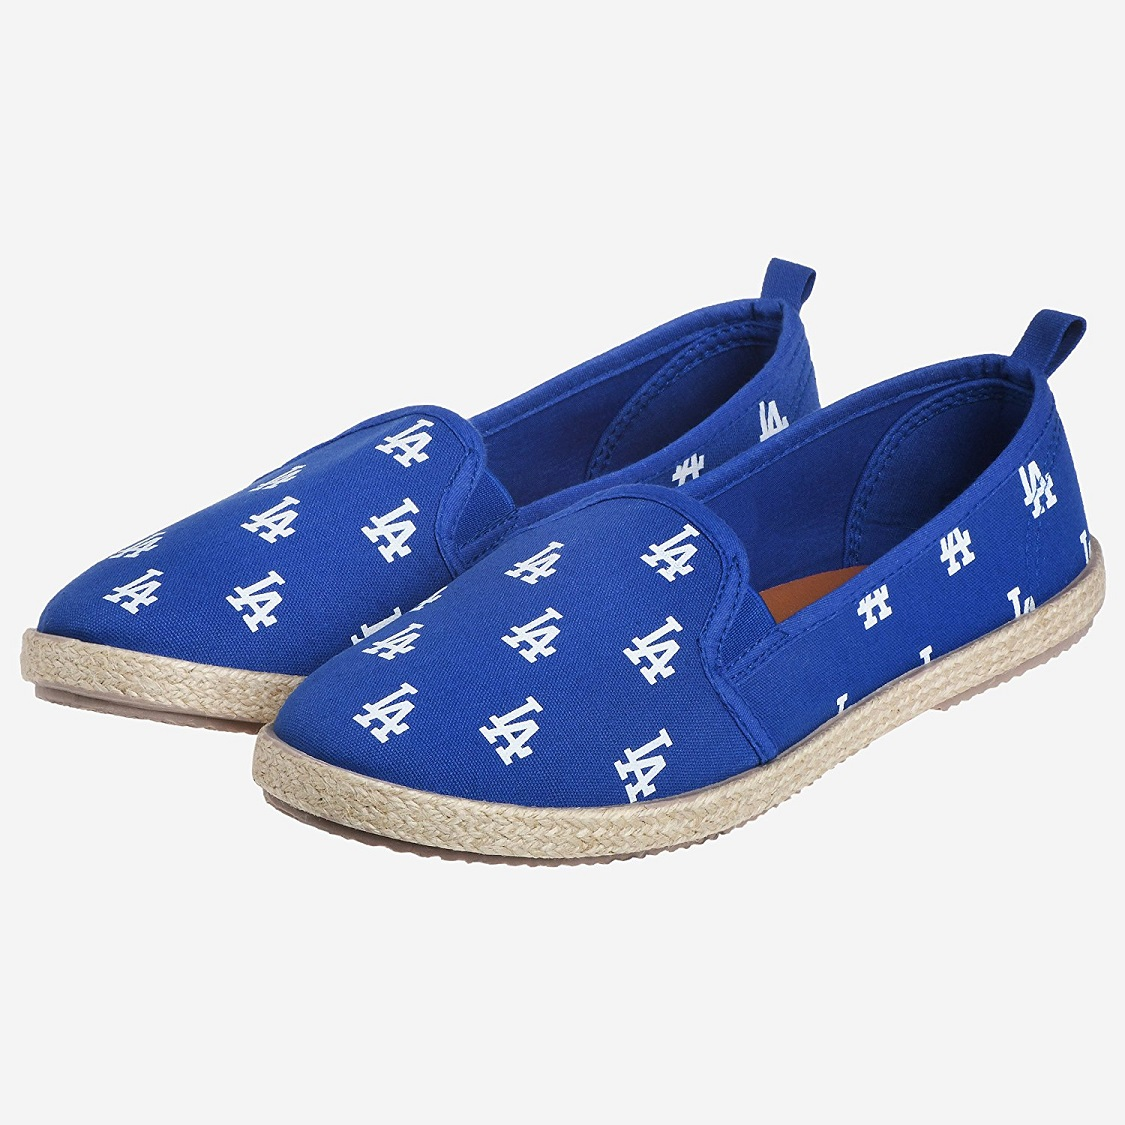 LA Dodgers Espadrille MLB Los Angeles Team Logo Womens Canvas Slip On Flats Shoes